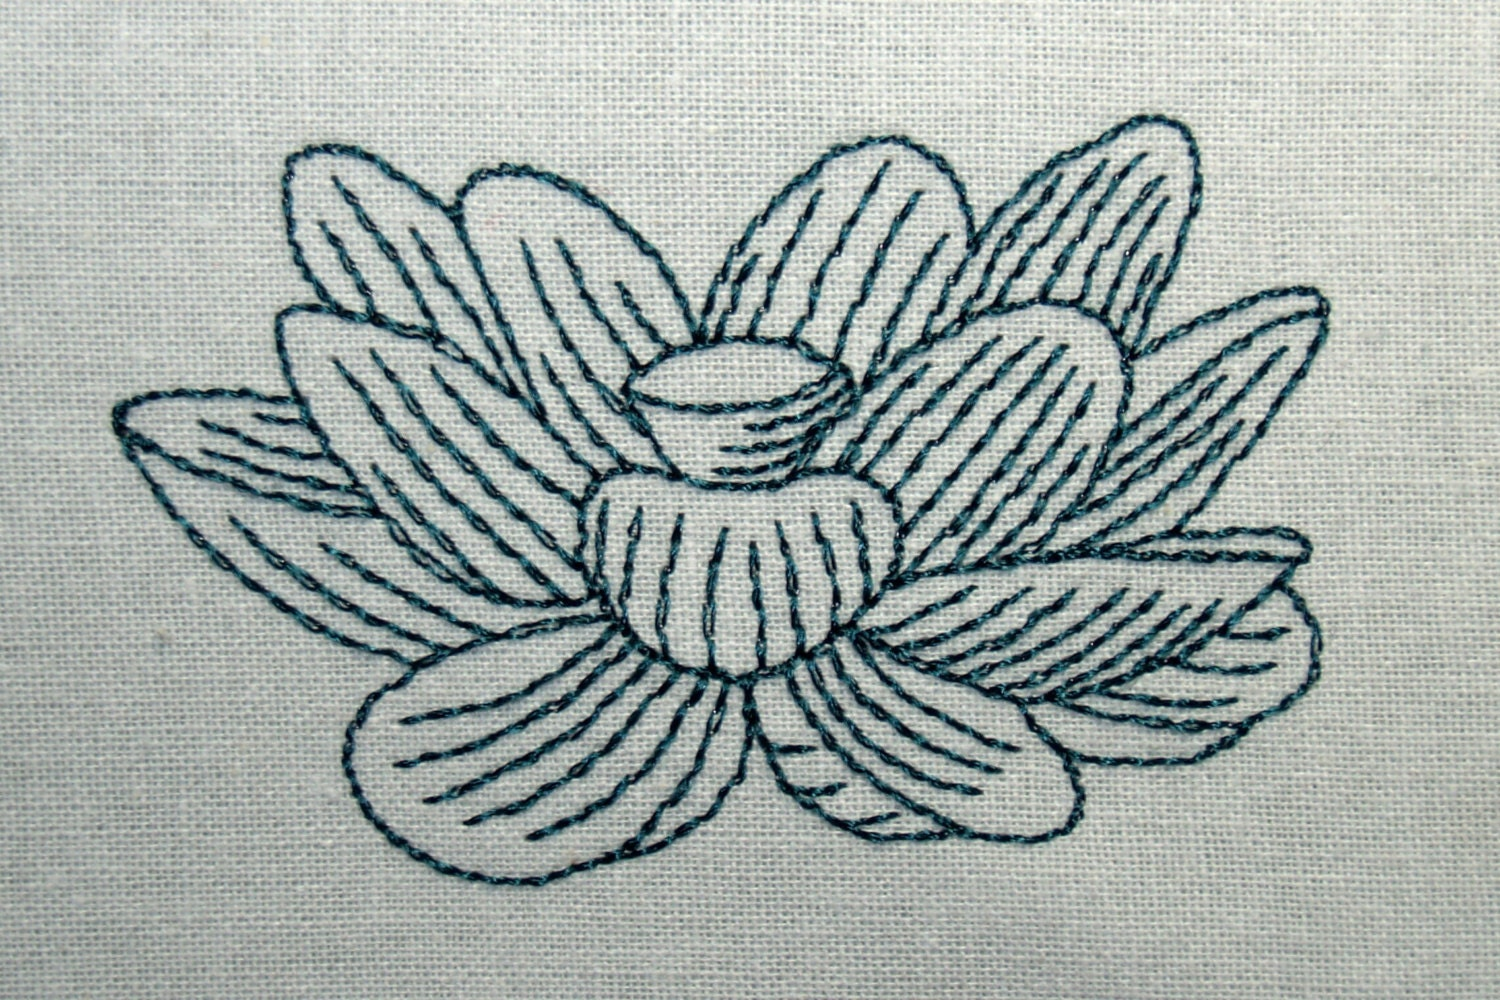 Line Drawing Embroidery : Lotus line art machine embroidery design download